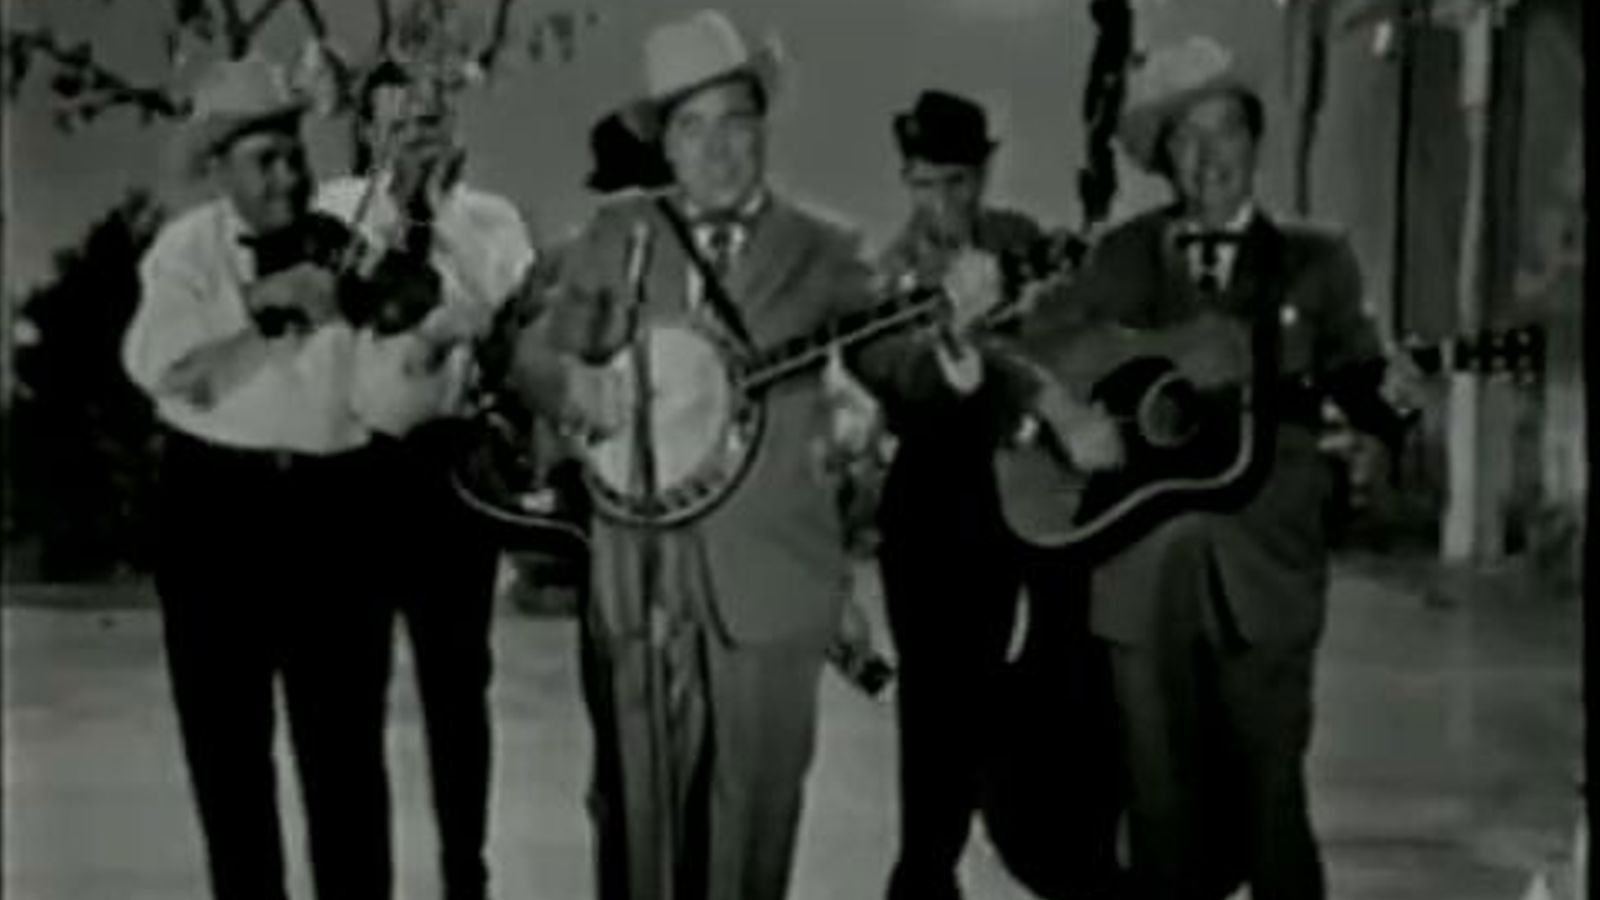 'Foggy Mountain Breakdown', d'Earl Scruggs, banda sonora de 'Bonnie and Clyde' (1967)